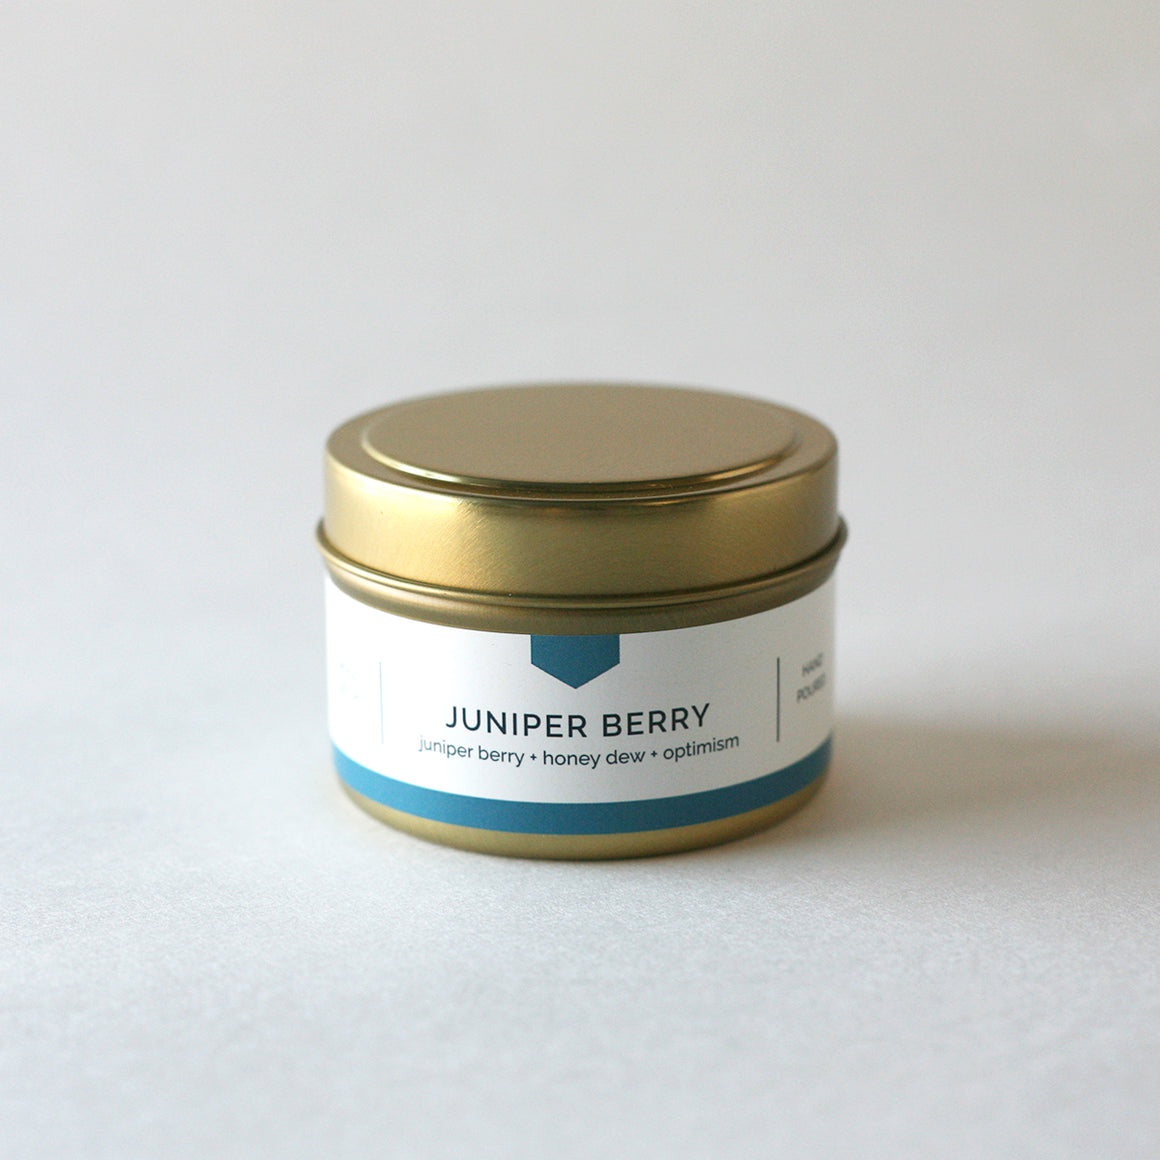 JUNIPER BERRY 4 oz Travel Tin Soy Candle